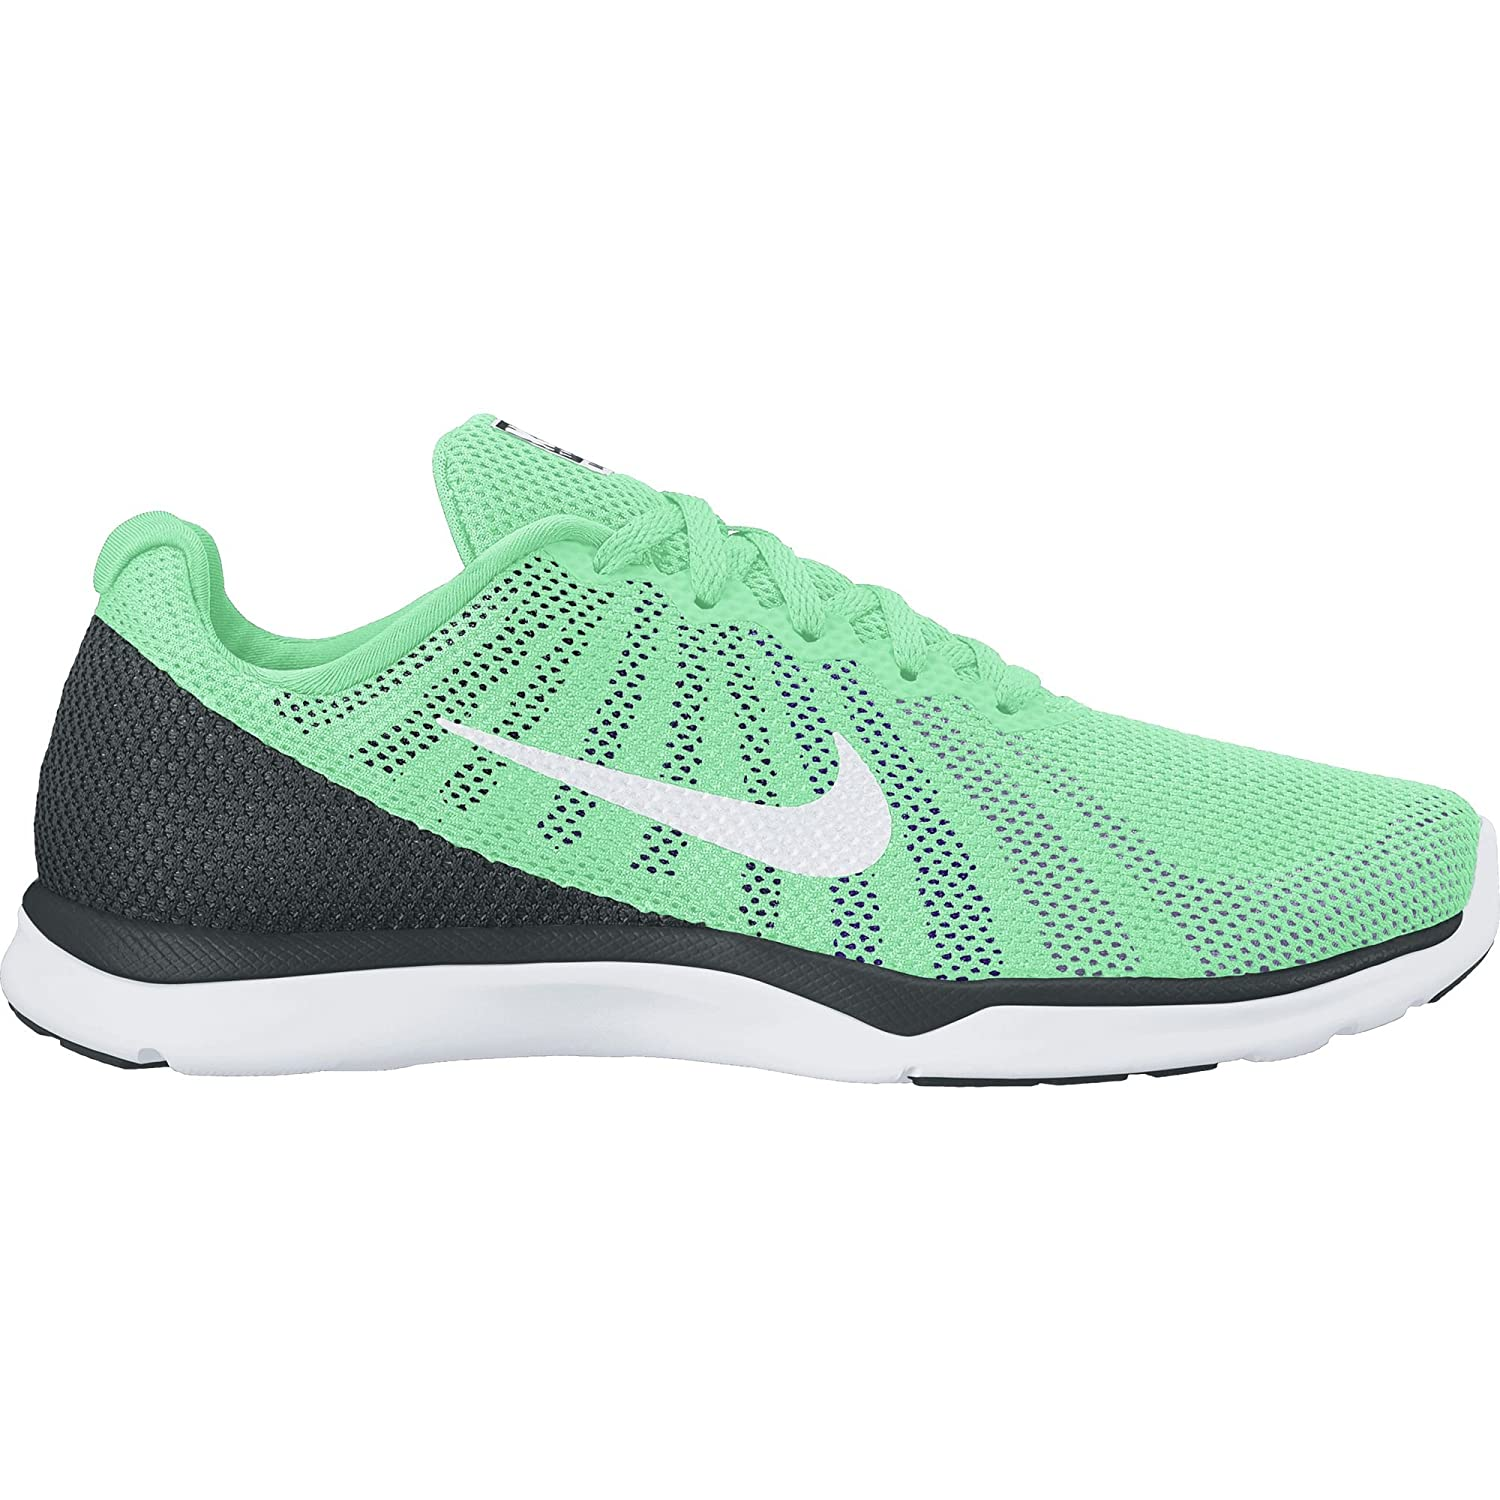 NIKE Women's in-Season TR 6 Cross Training Shoe B01DL3XY8C 8 B(M) US|Green Glow/White/Urban Lilac/Force Purple